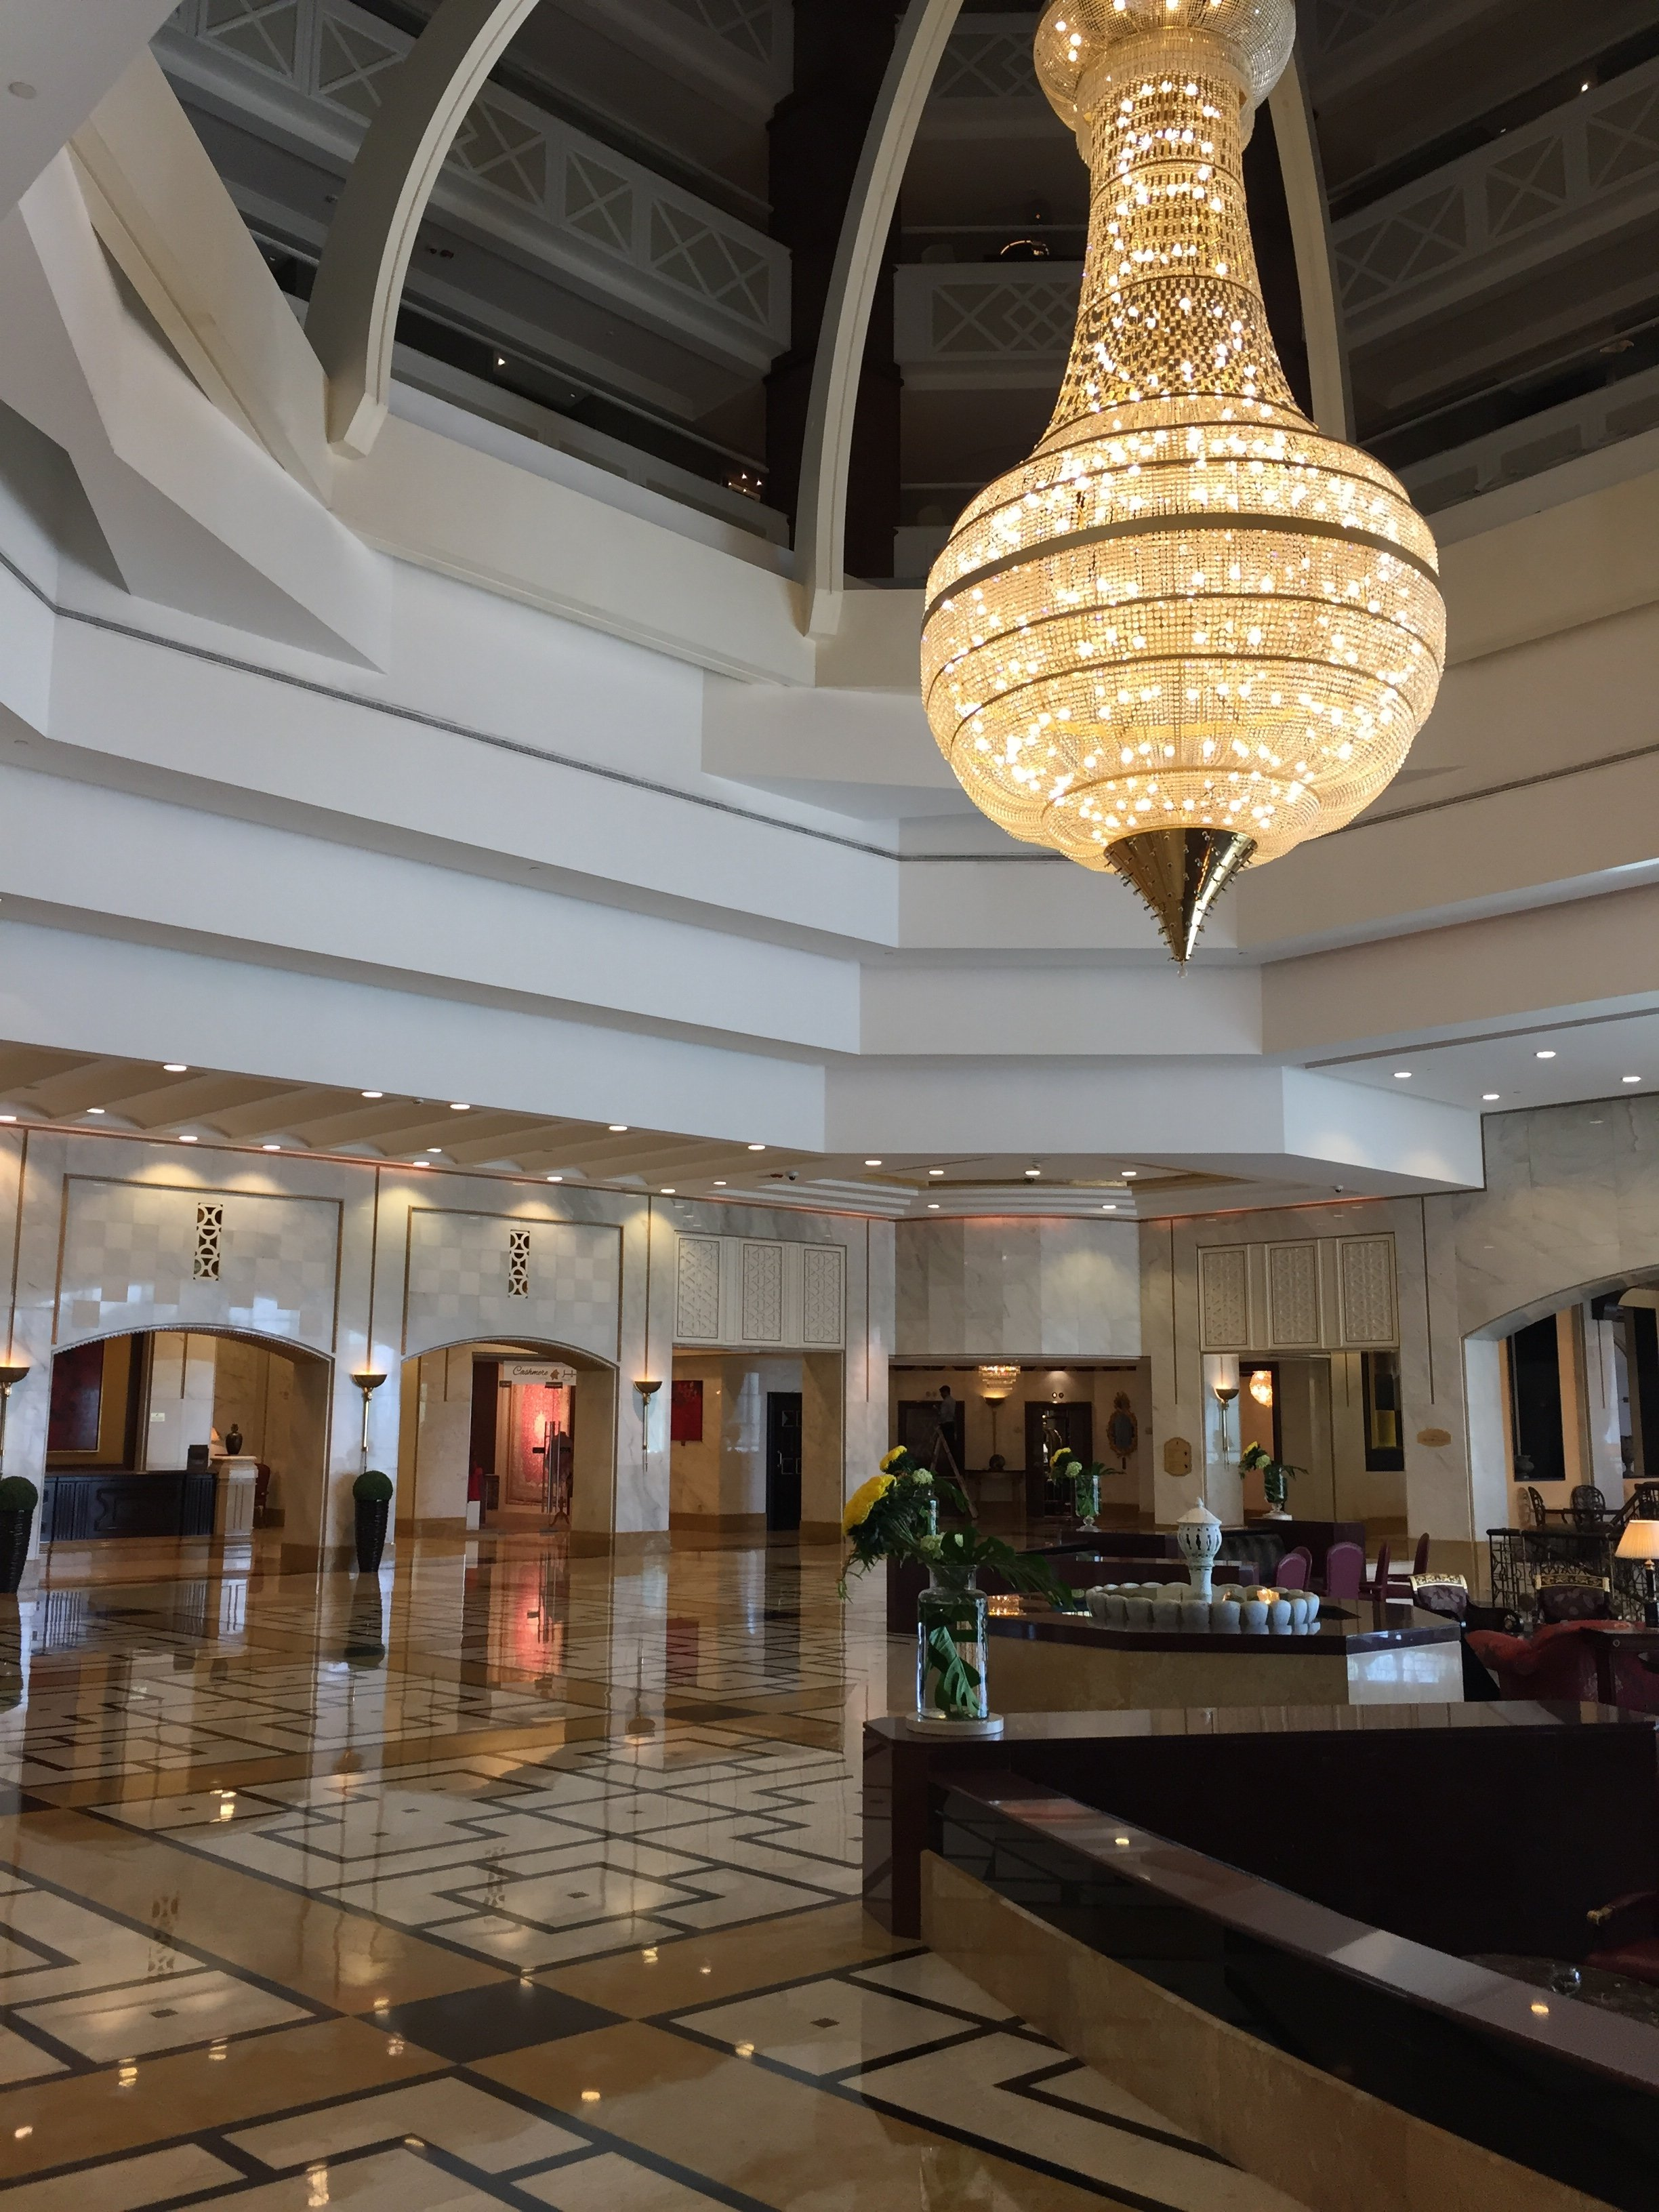 The Ritz-Carlton Doha lobby